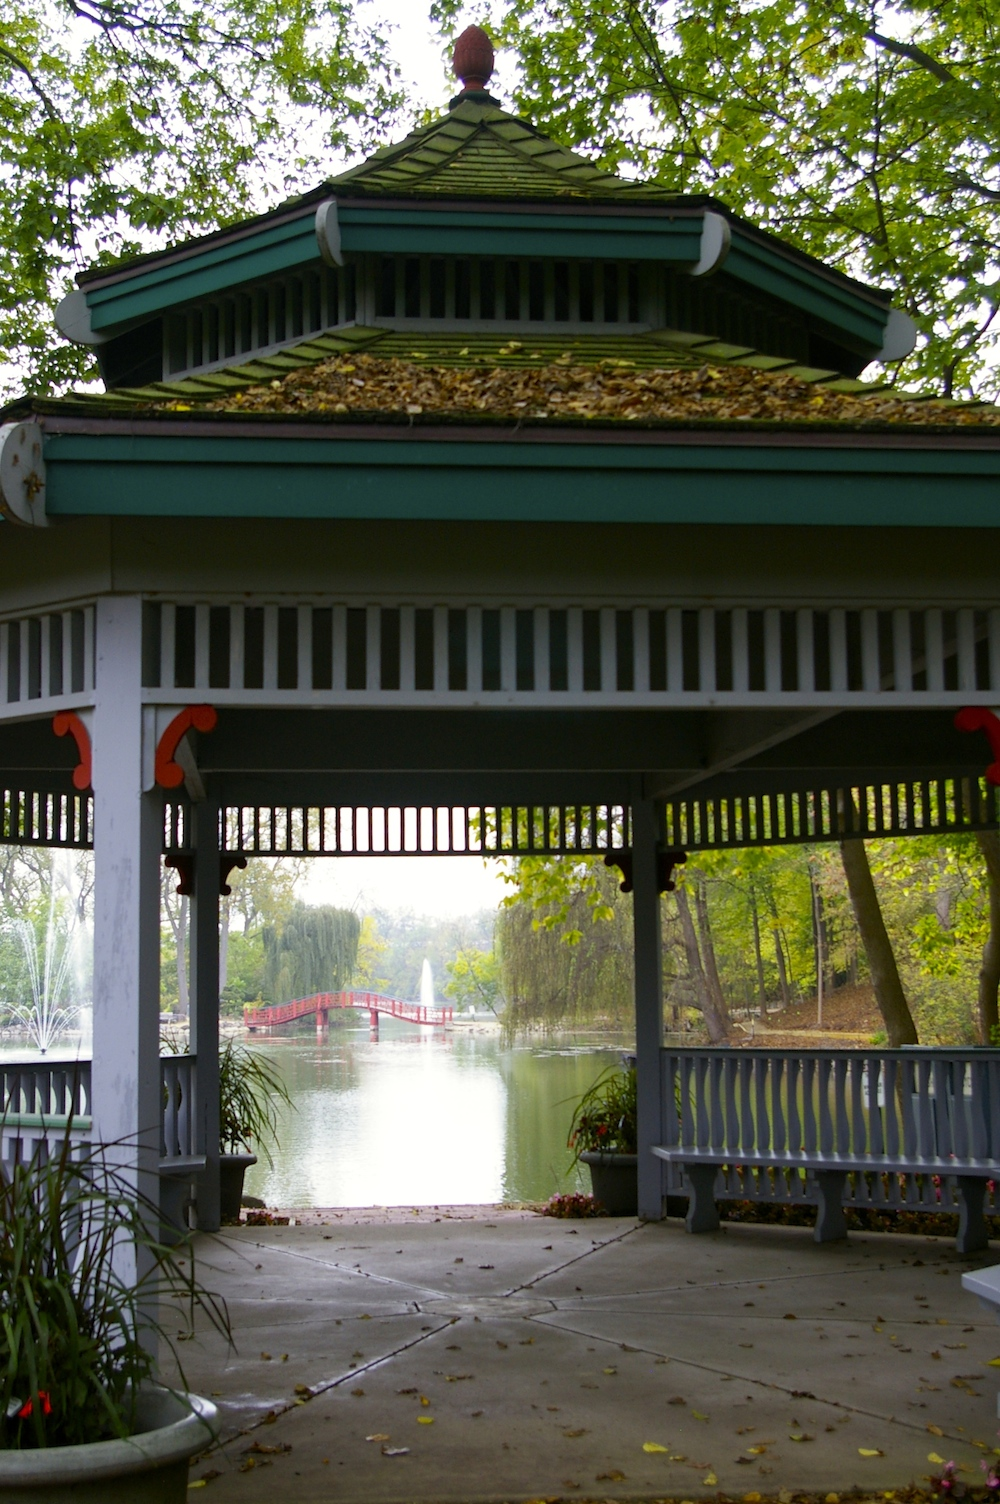 Gazebo with view of red bridge and fountain in the background at the Rotary Botanical Gardens in Janesville, Wisconsin